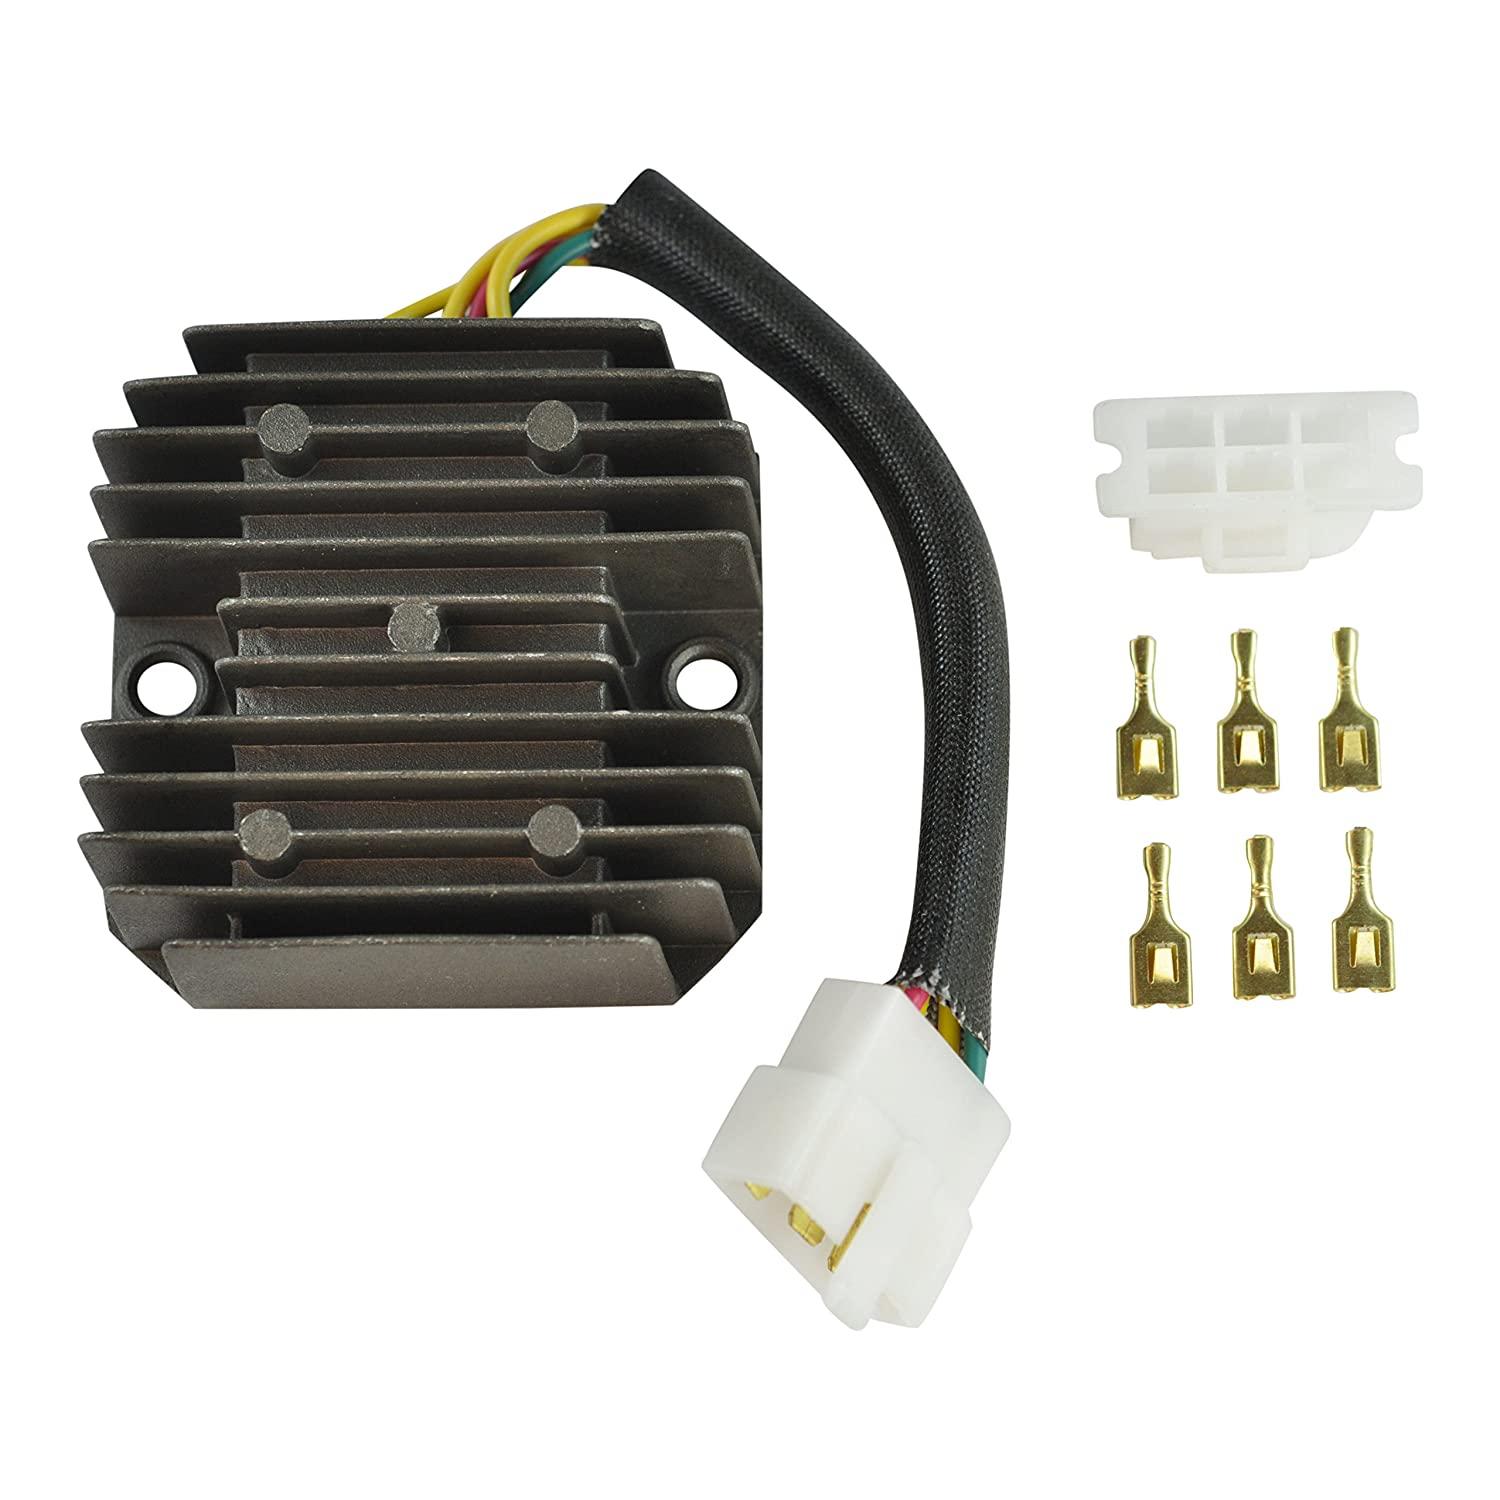 Voltage Regulator Rectifier For Polaris Sawtooth 200 And Circuit Motorcycle Free Electronic Phoenix 2005 2006 2007 2008 2009 2010 2011 2012 2013 2014 2015 2016 2017 Oem Repl